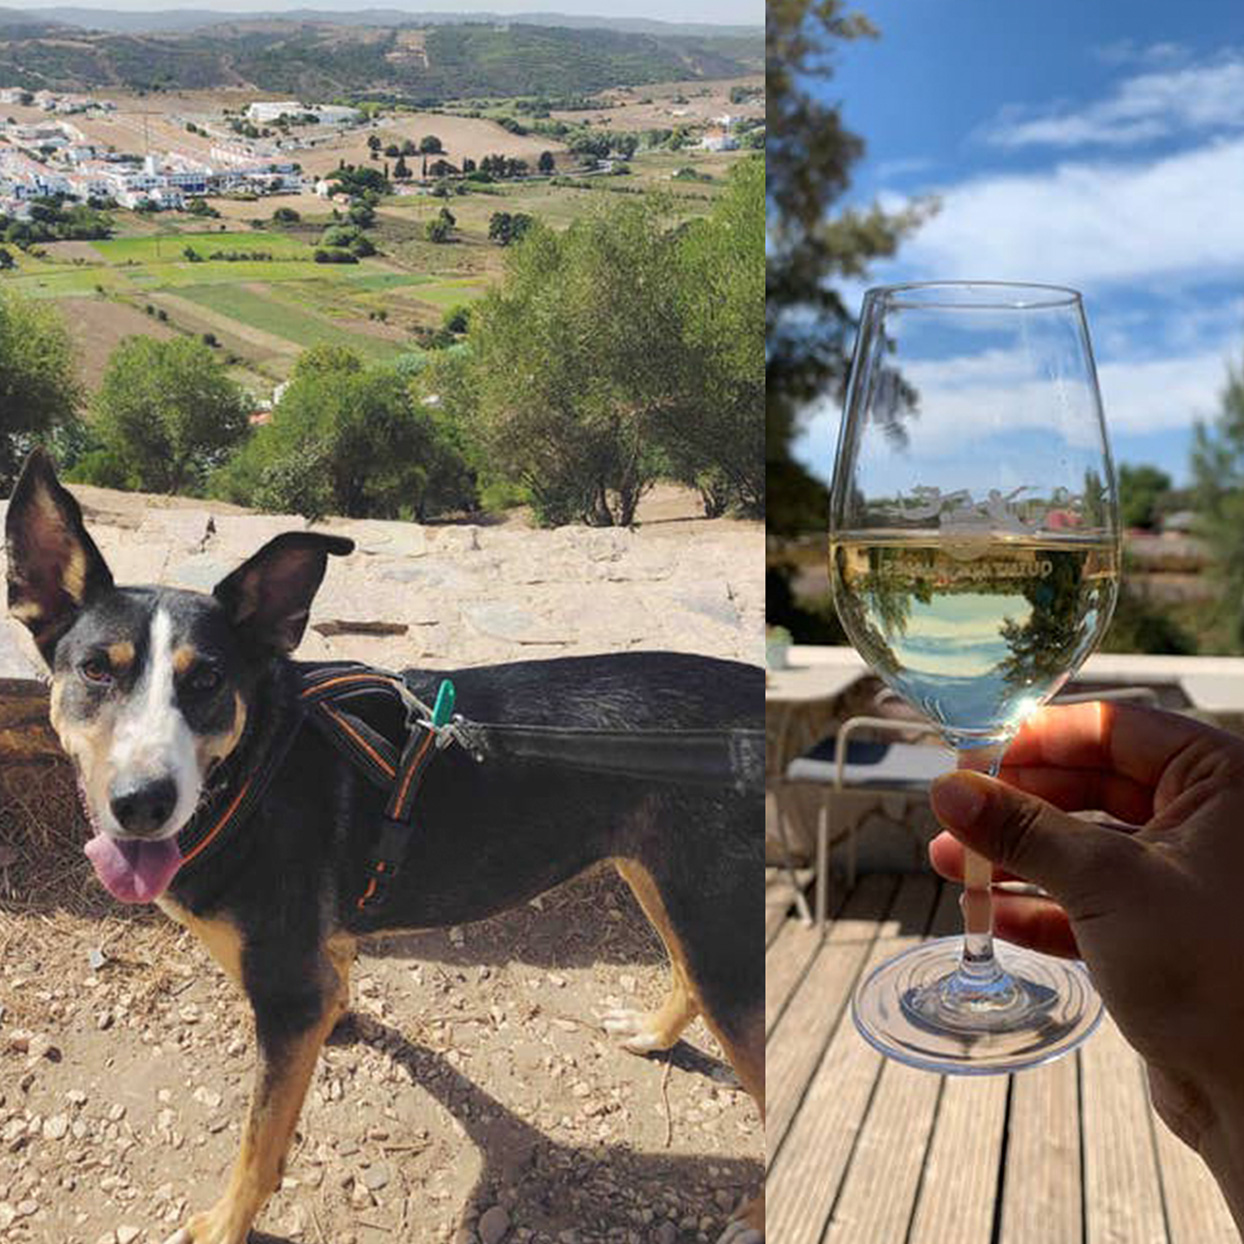 collage of dog with a view of Portugal behind him, collaged with hand holding a glass of wine with beautiful scenery in the background